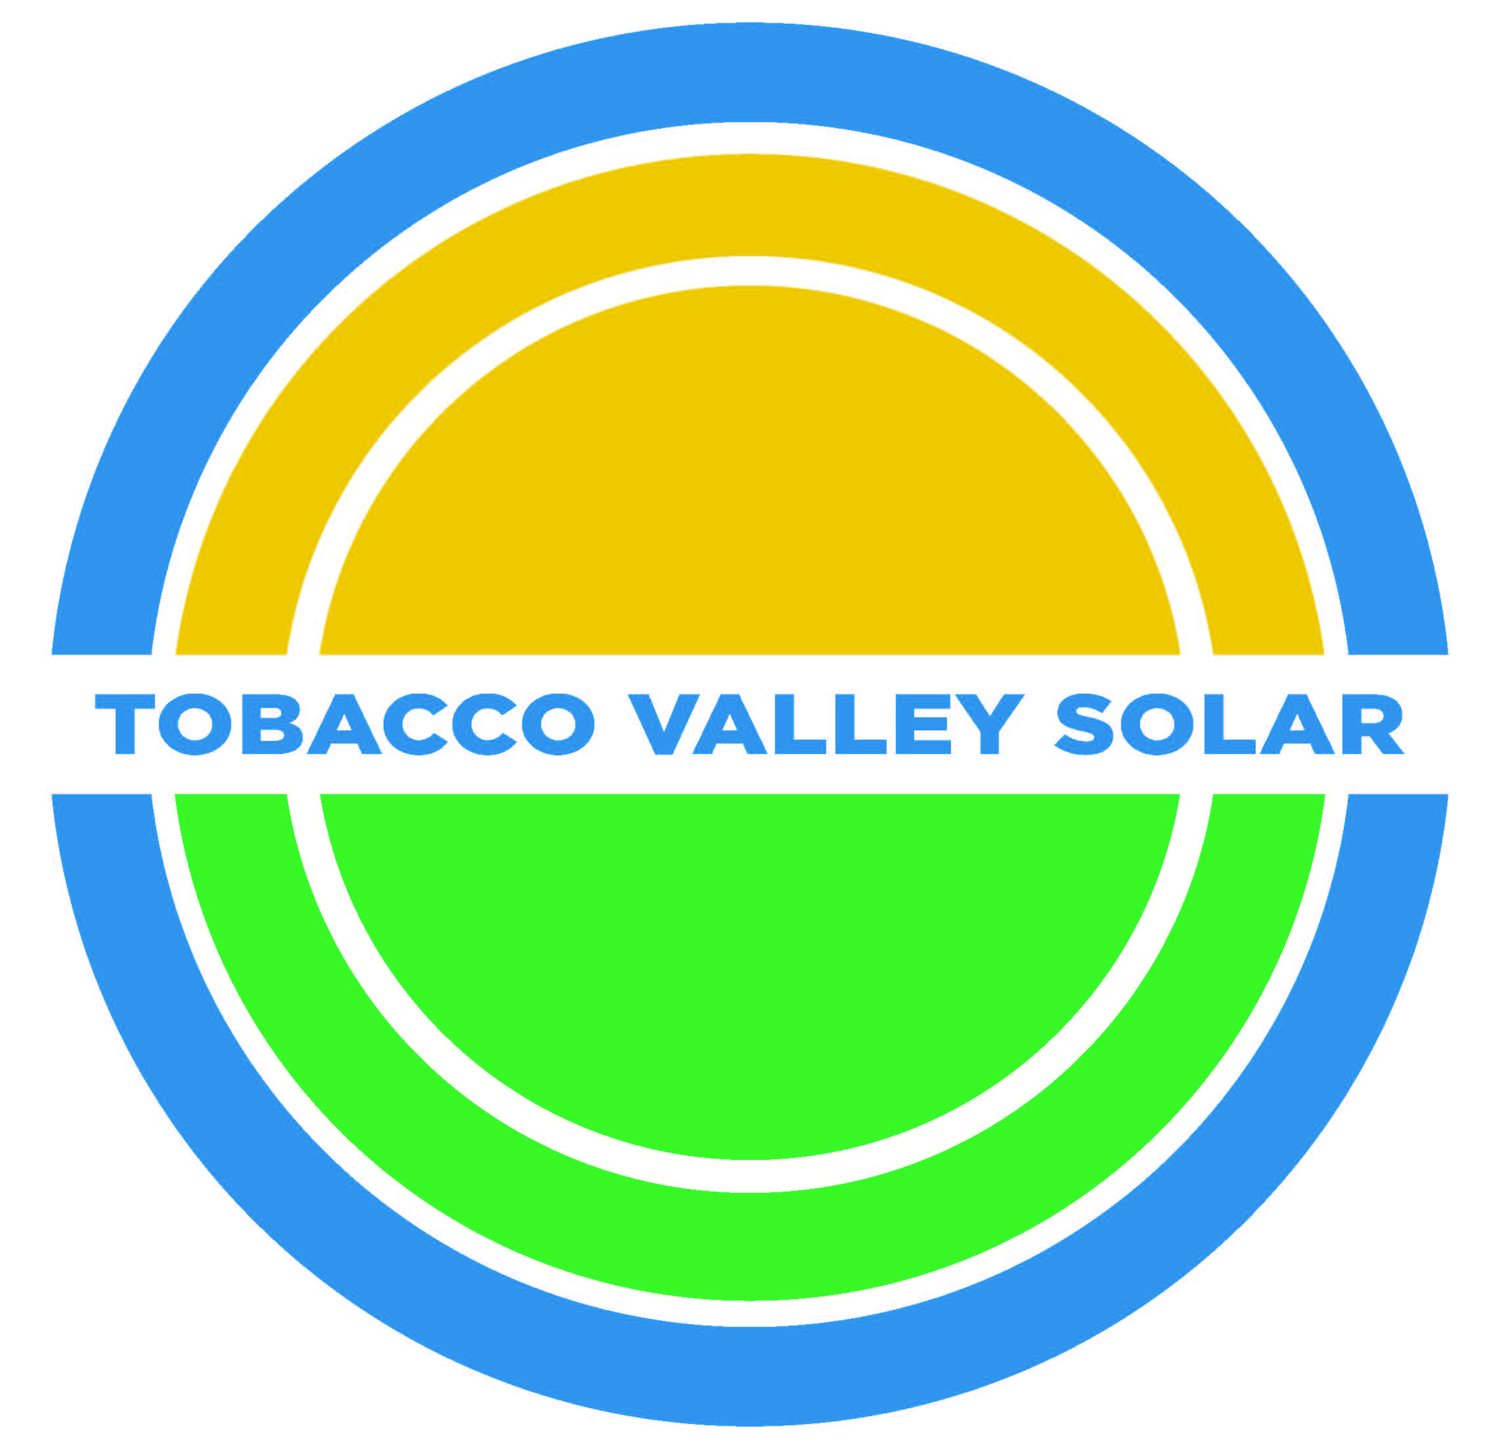 Tobacco Valley Solar Project